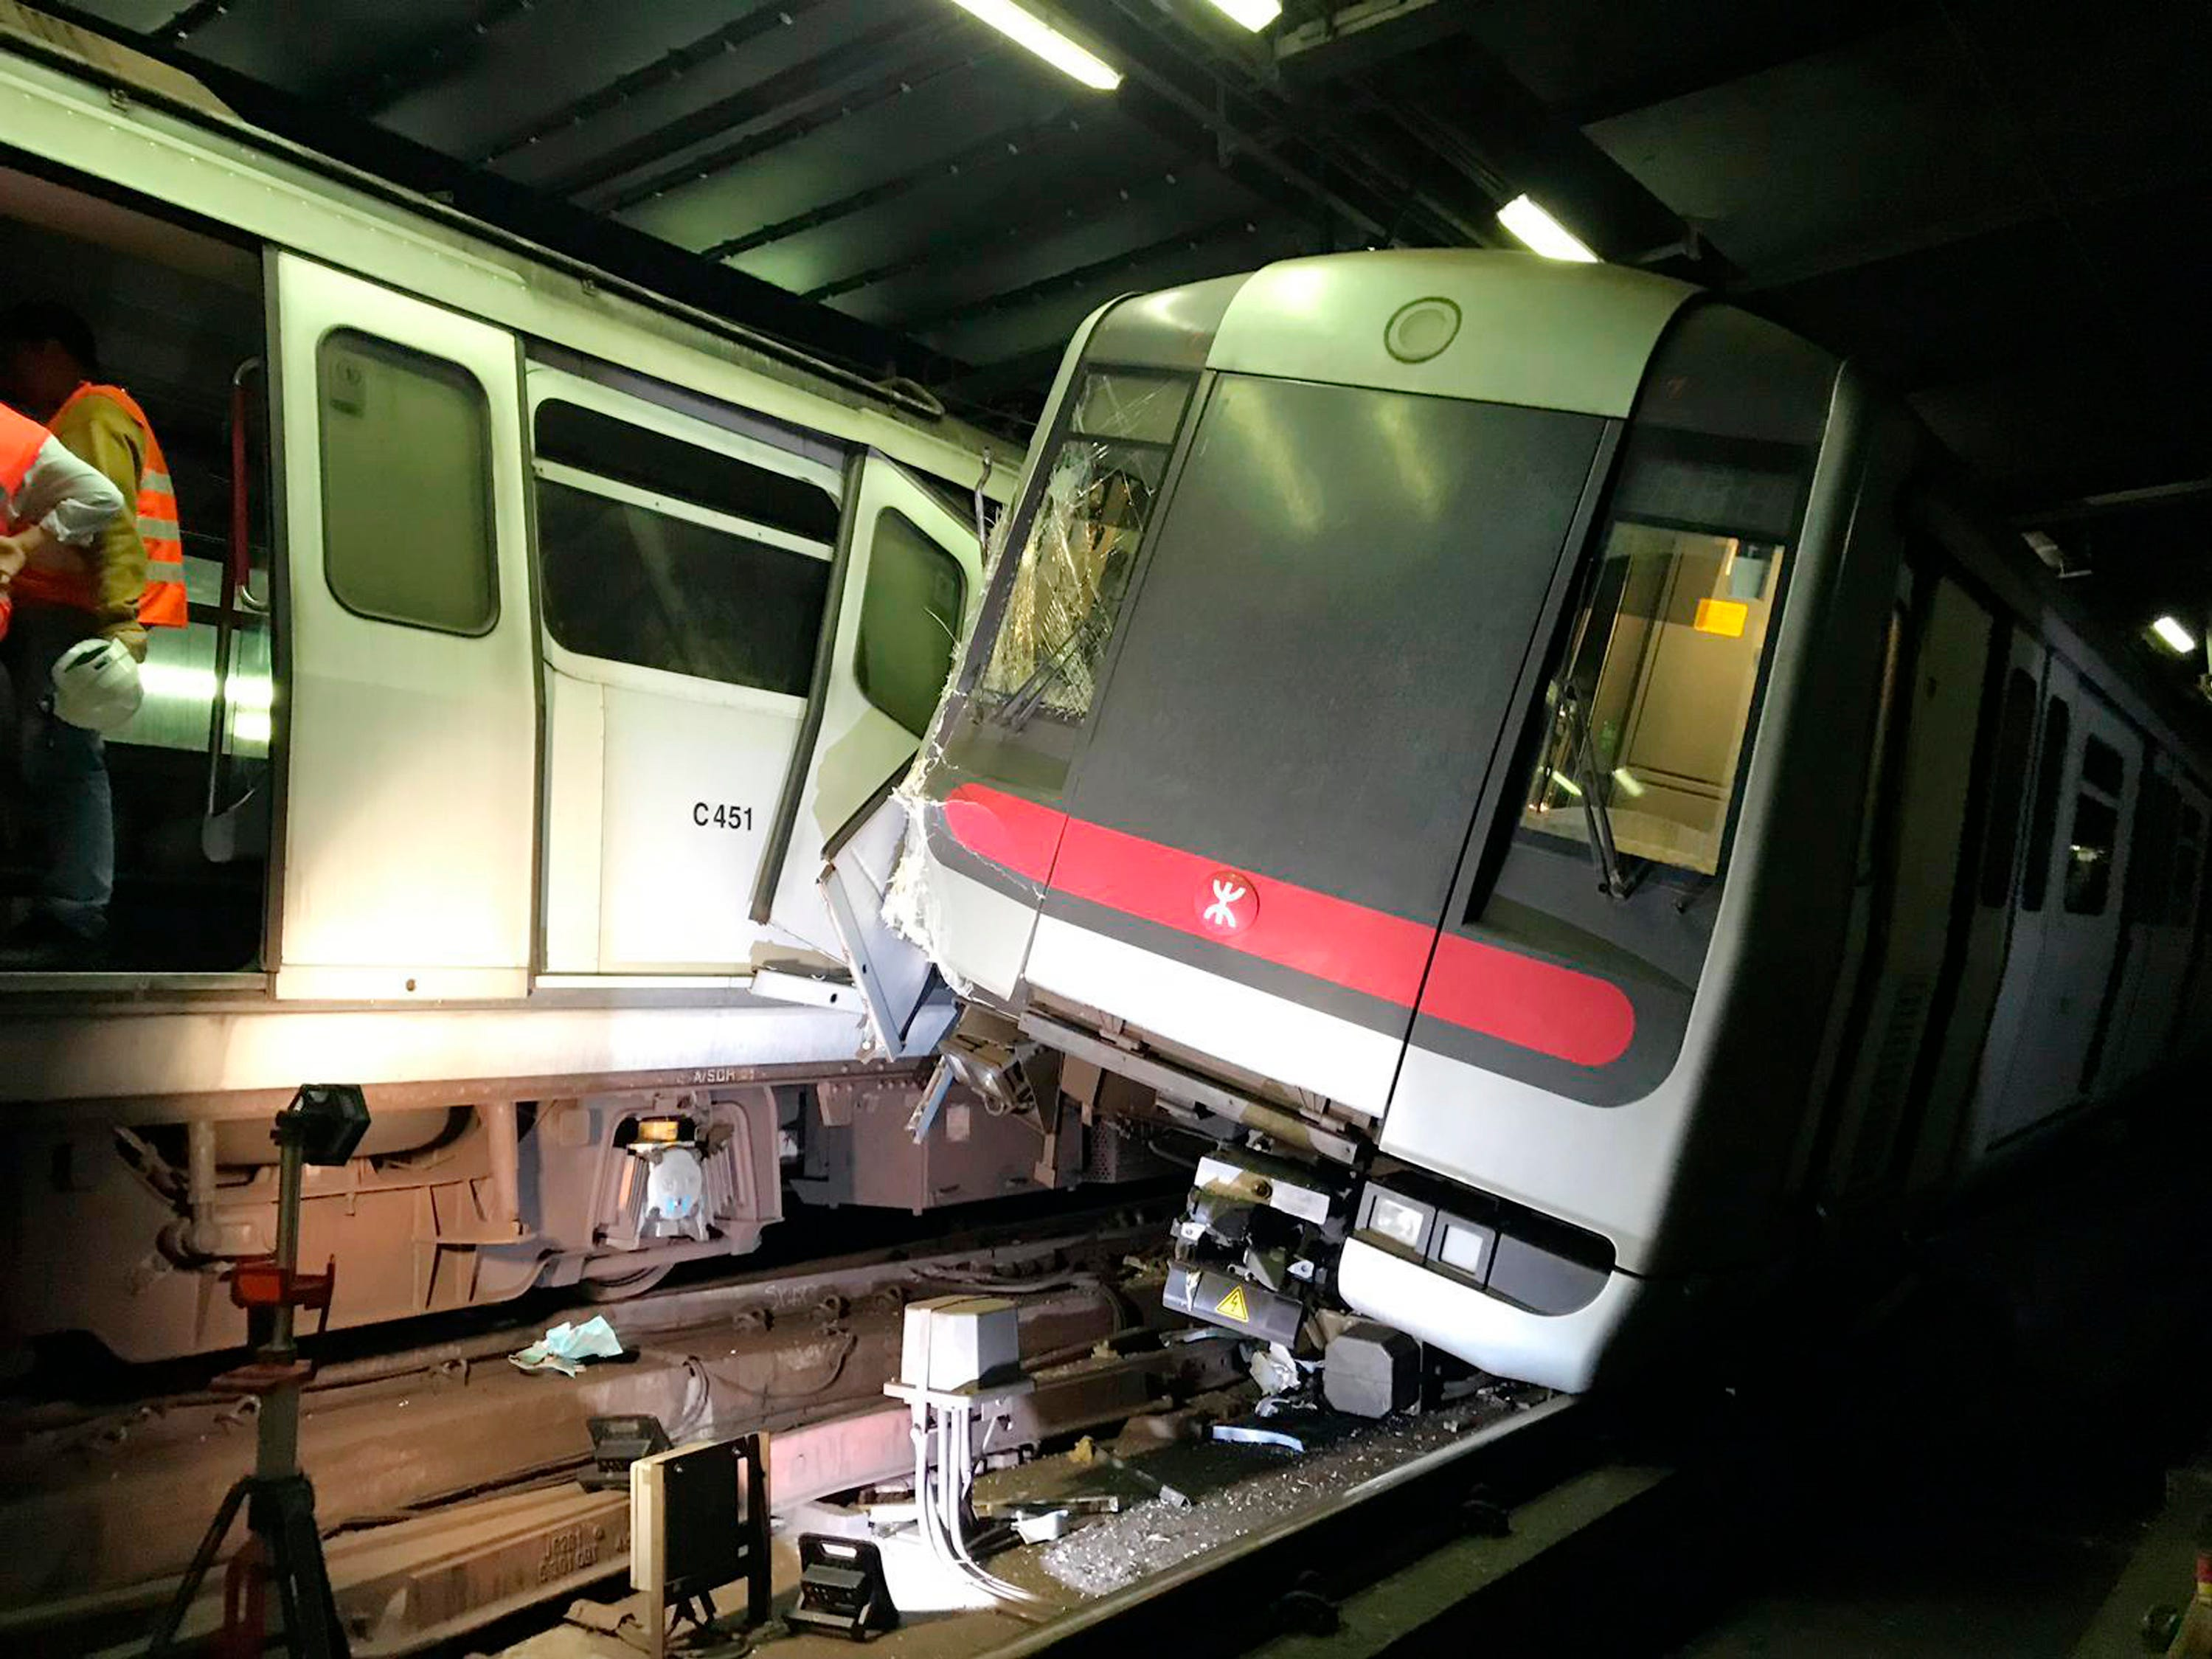 In this photo released by MTR Corporation, two MTR trains sit after collision on the Tsuen Wan Line during testing of the rail company's new signal system in Hong Kong Monday, March, 18, 2019. Two Hong Kong subway trains collided in early hours on Monday, leaving one train driver suffered leg injury and the other felt unwell after inhaling smoke. It cause service suspensions between affected stations.